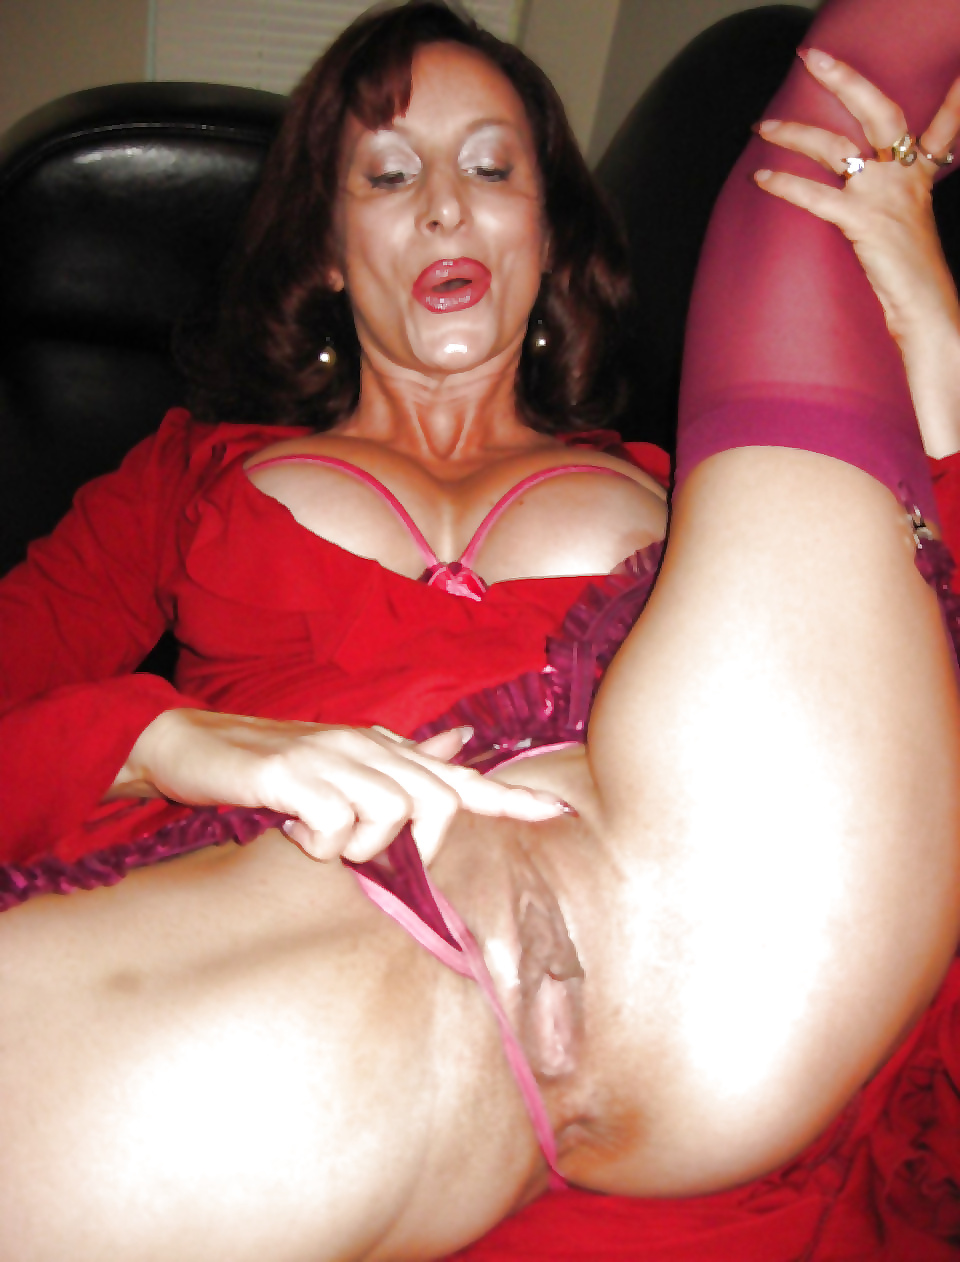 Milf on fire